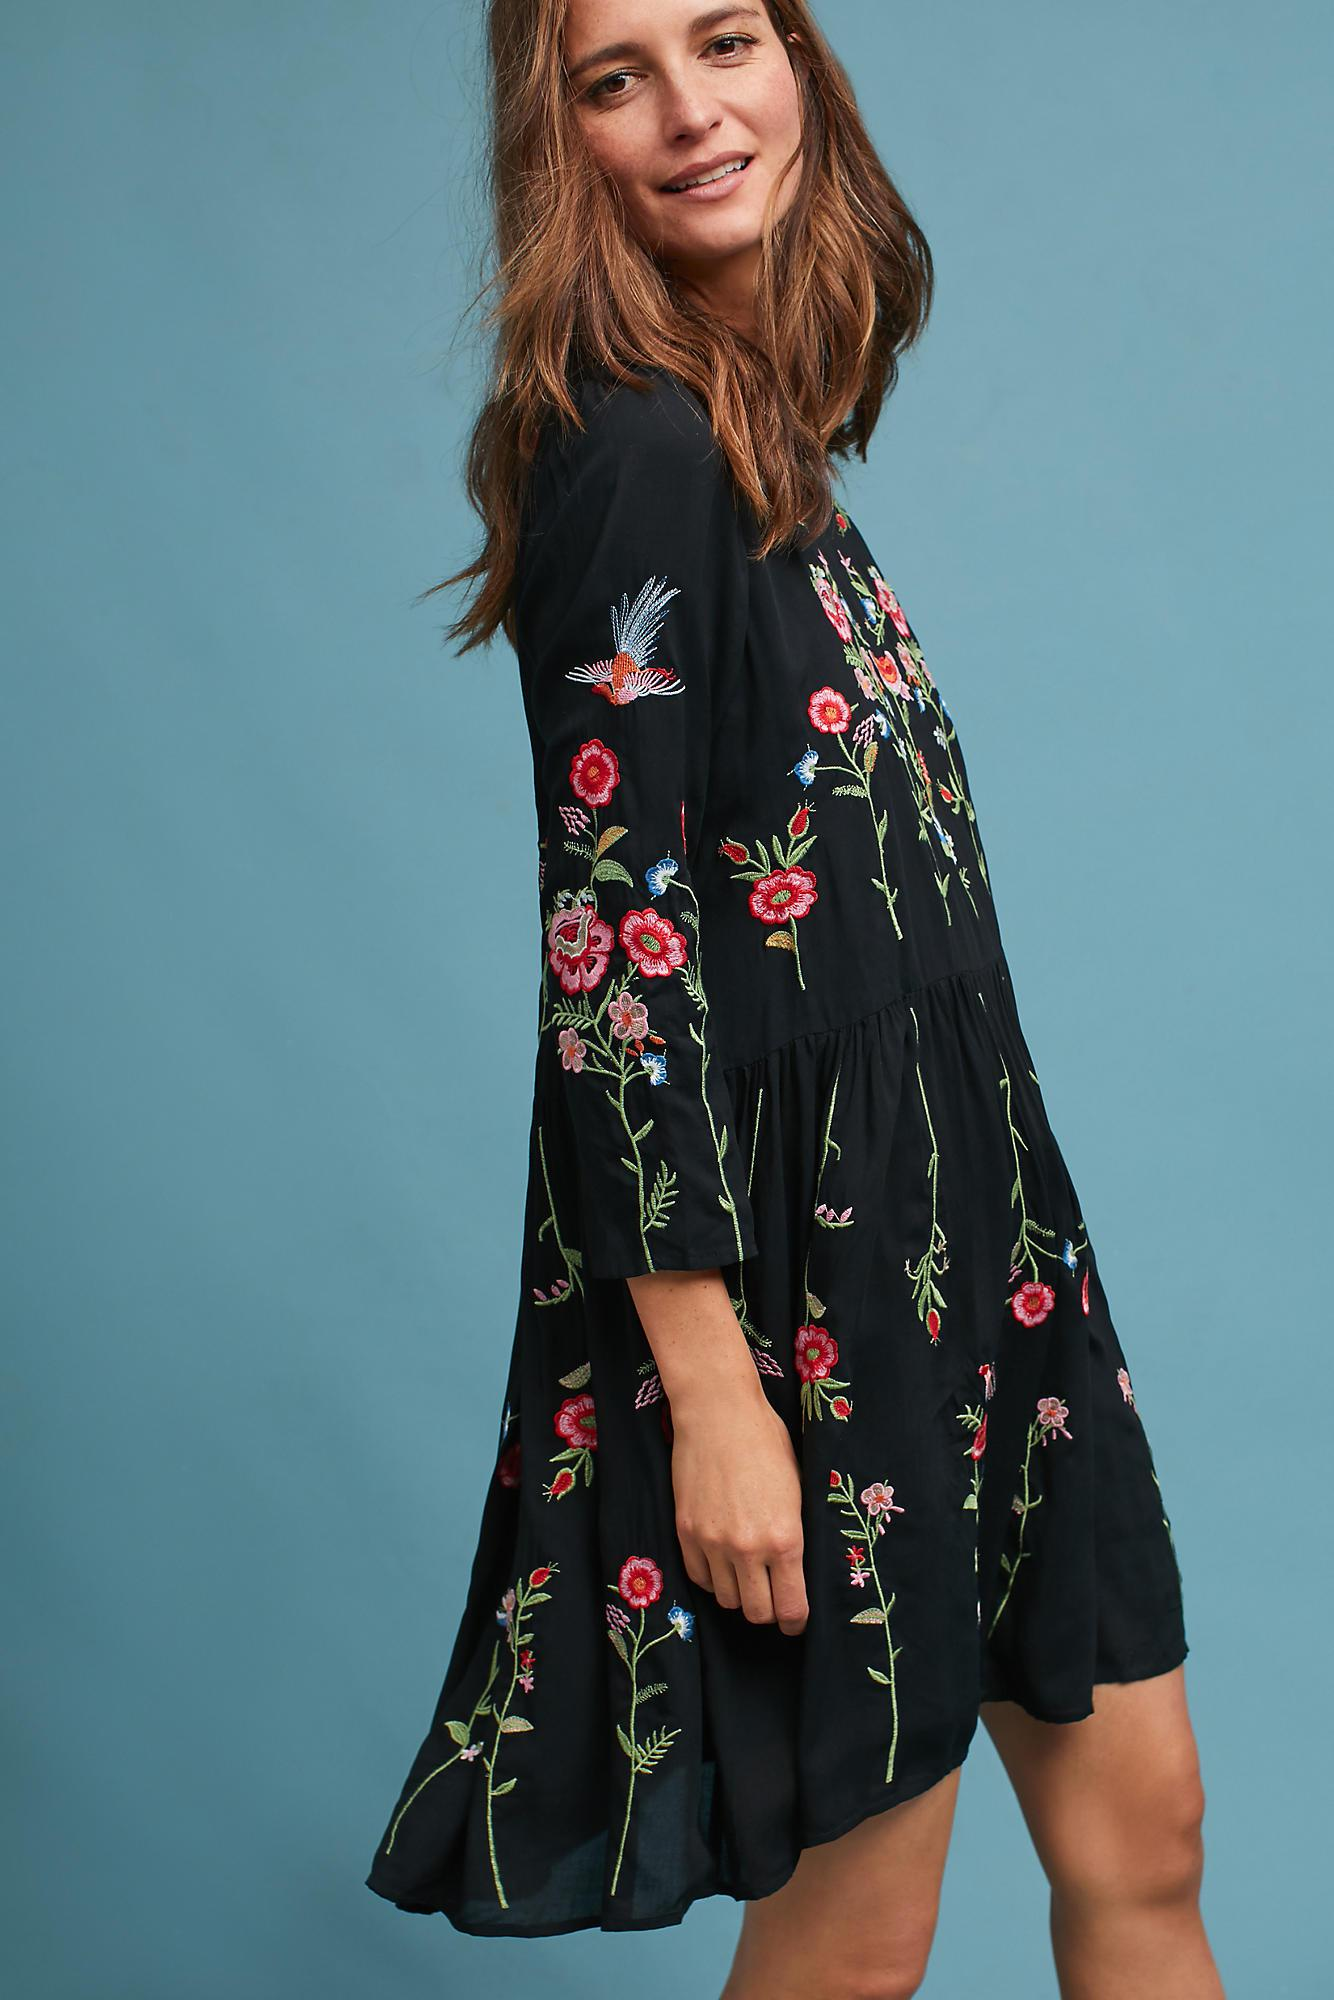 Lyst - Maeve Allison Embroidered Tunic Dress, Black in Black